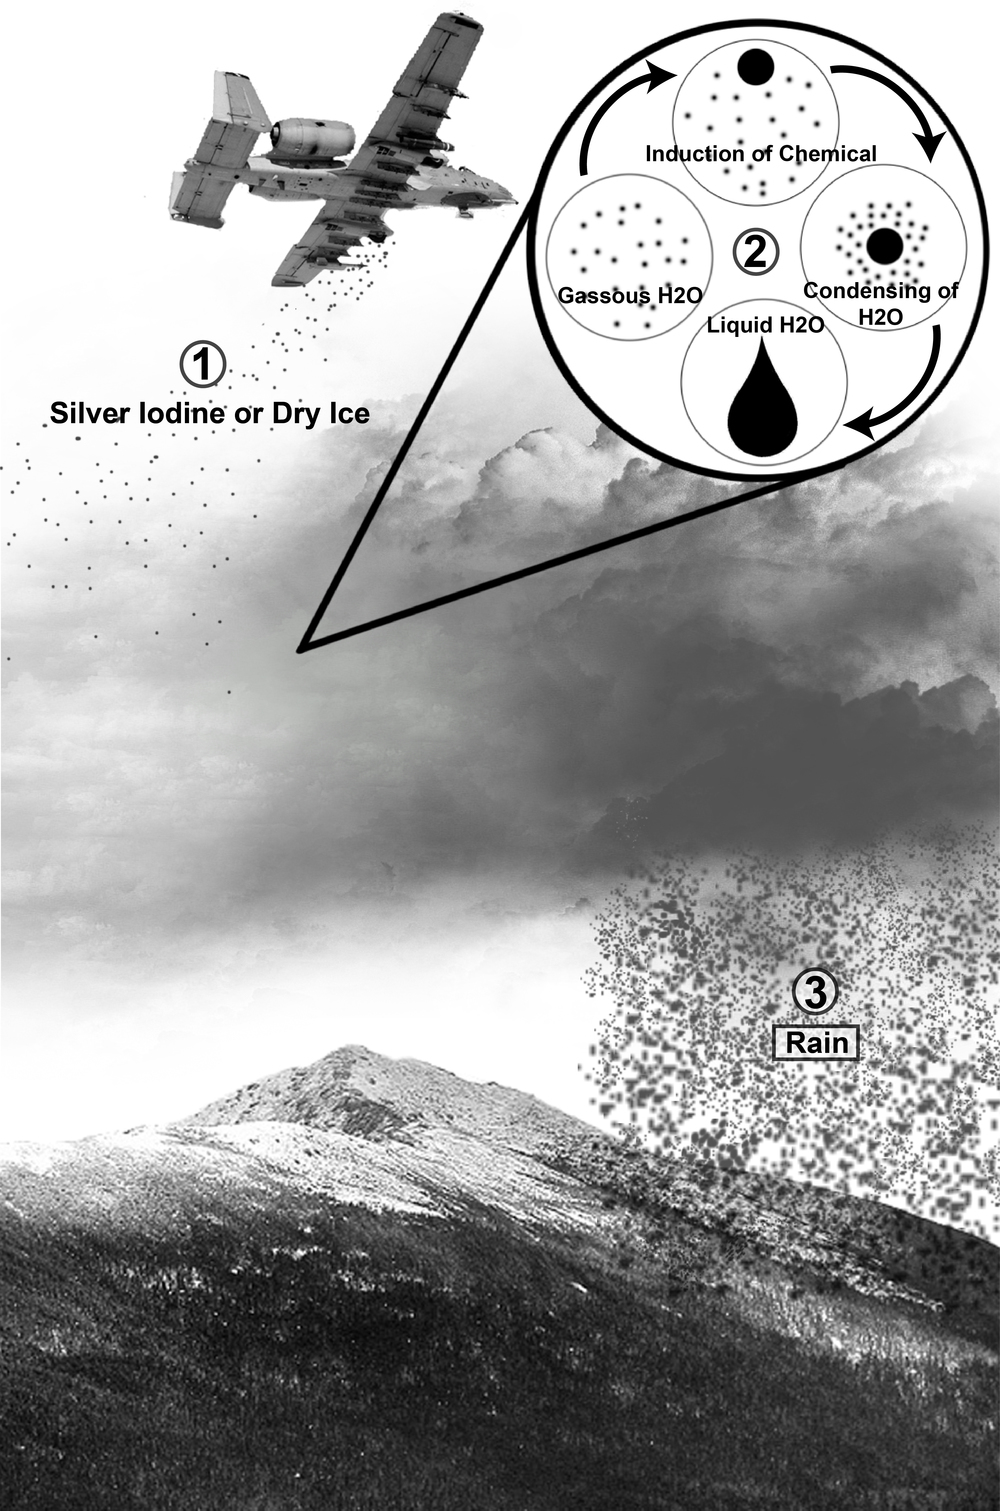 How cloud seeding is hypothesized to work. Photo: Wikipedia